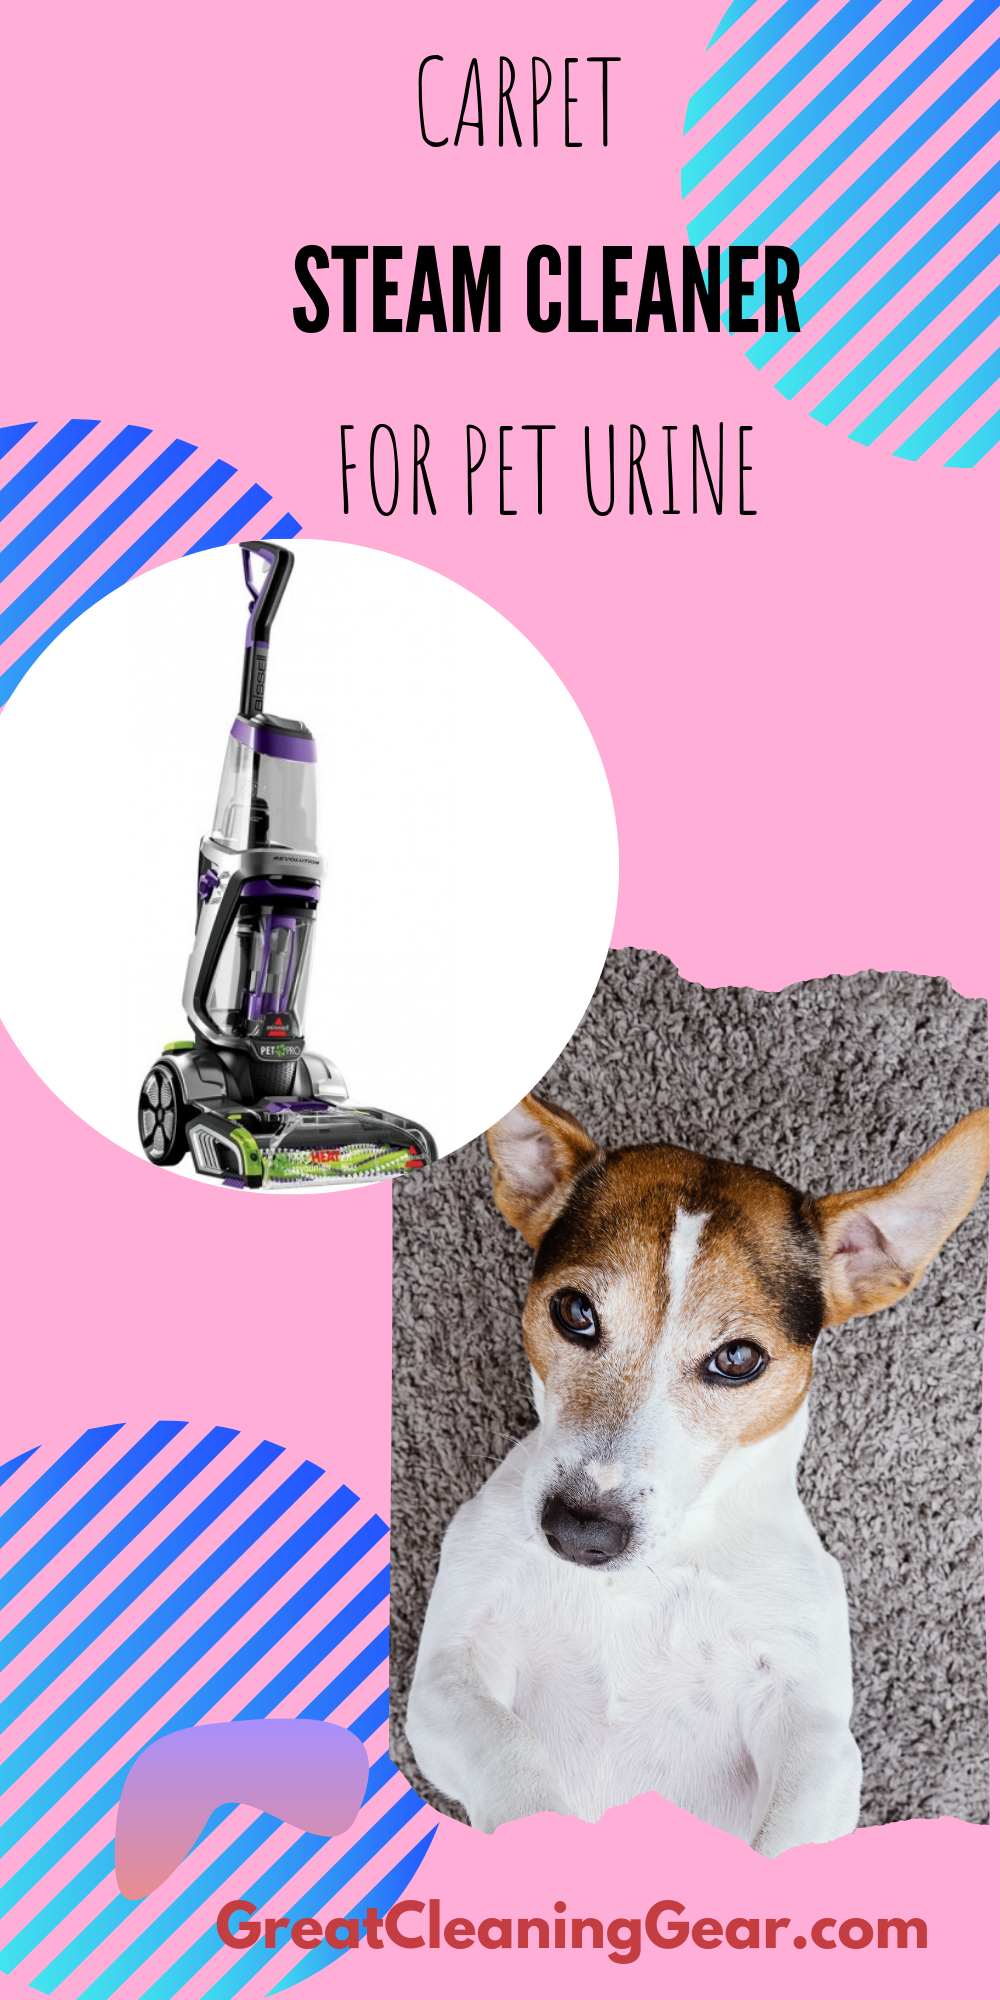 Best Steam Cleaner For Carpets With Pets Carpet Steam Cleaner Steam Cleaners Best Steam Cleaner